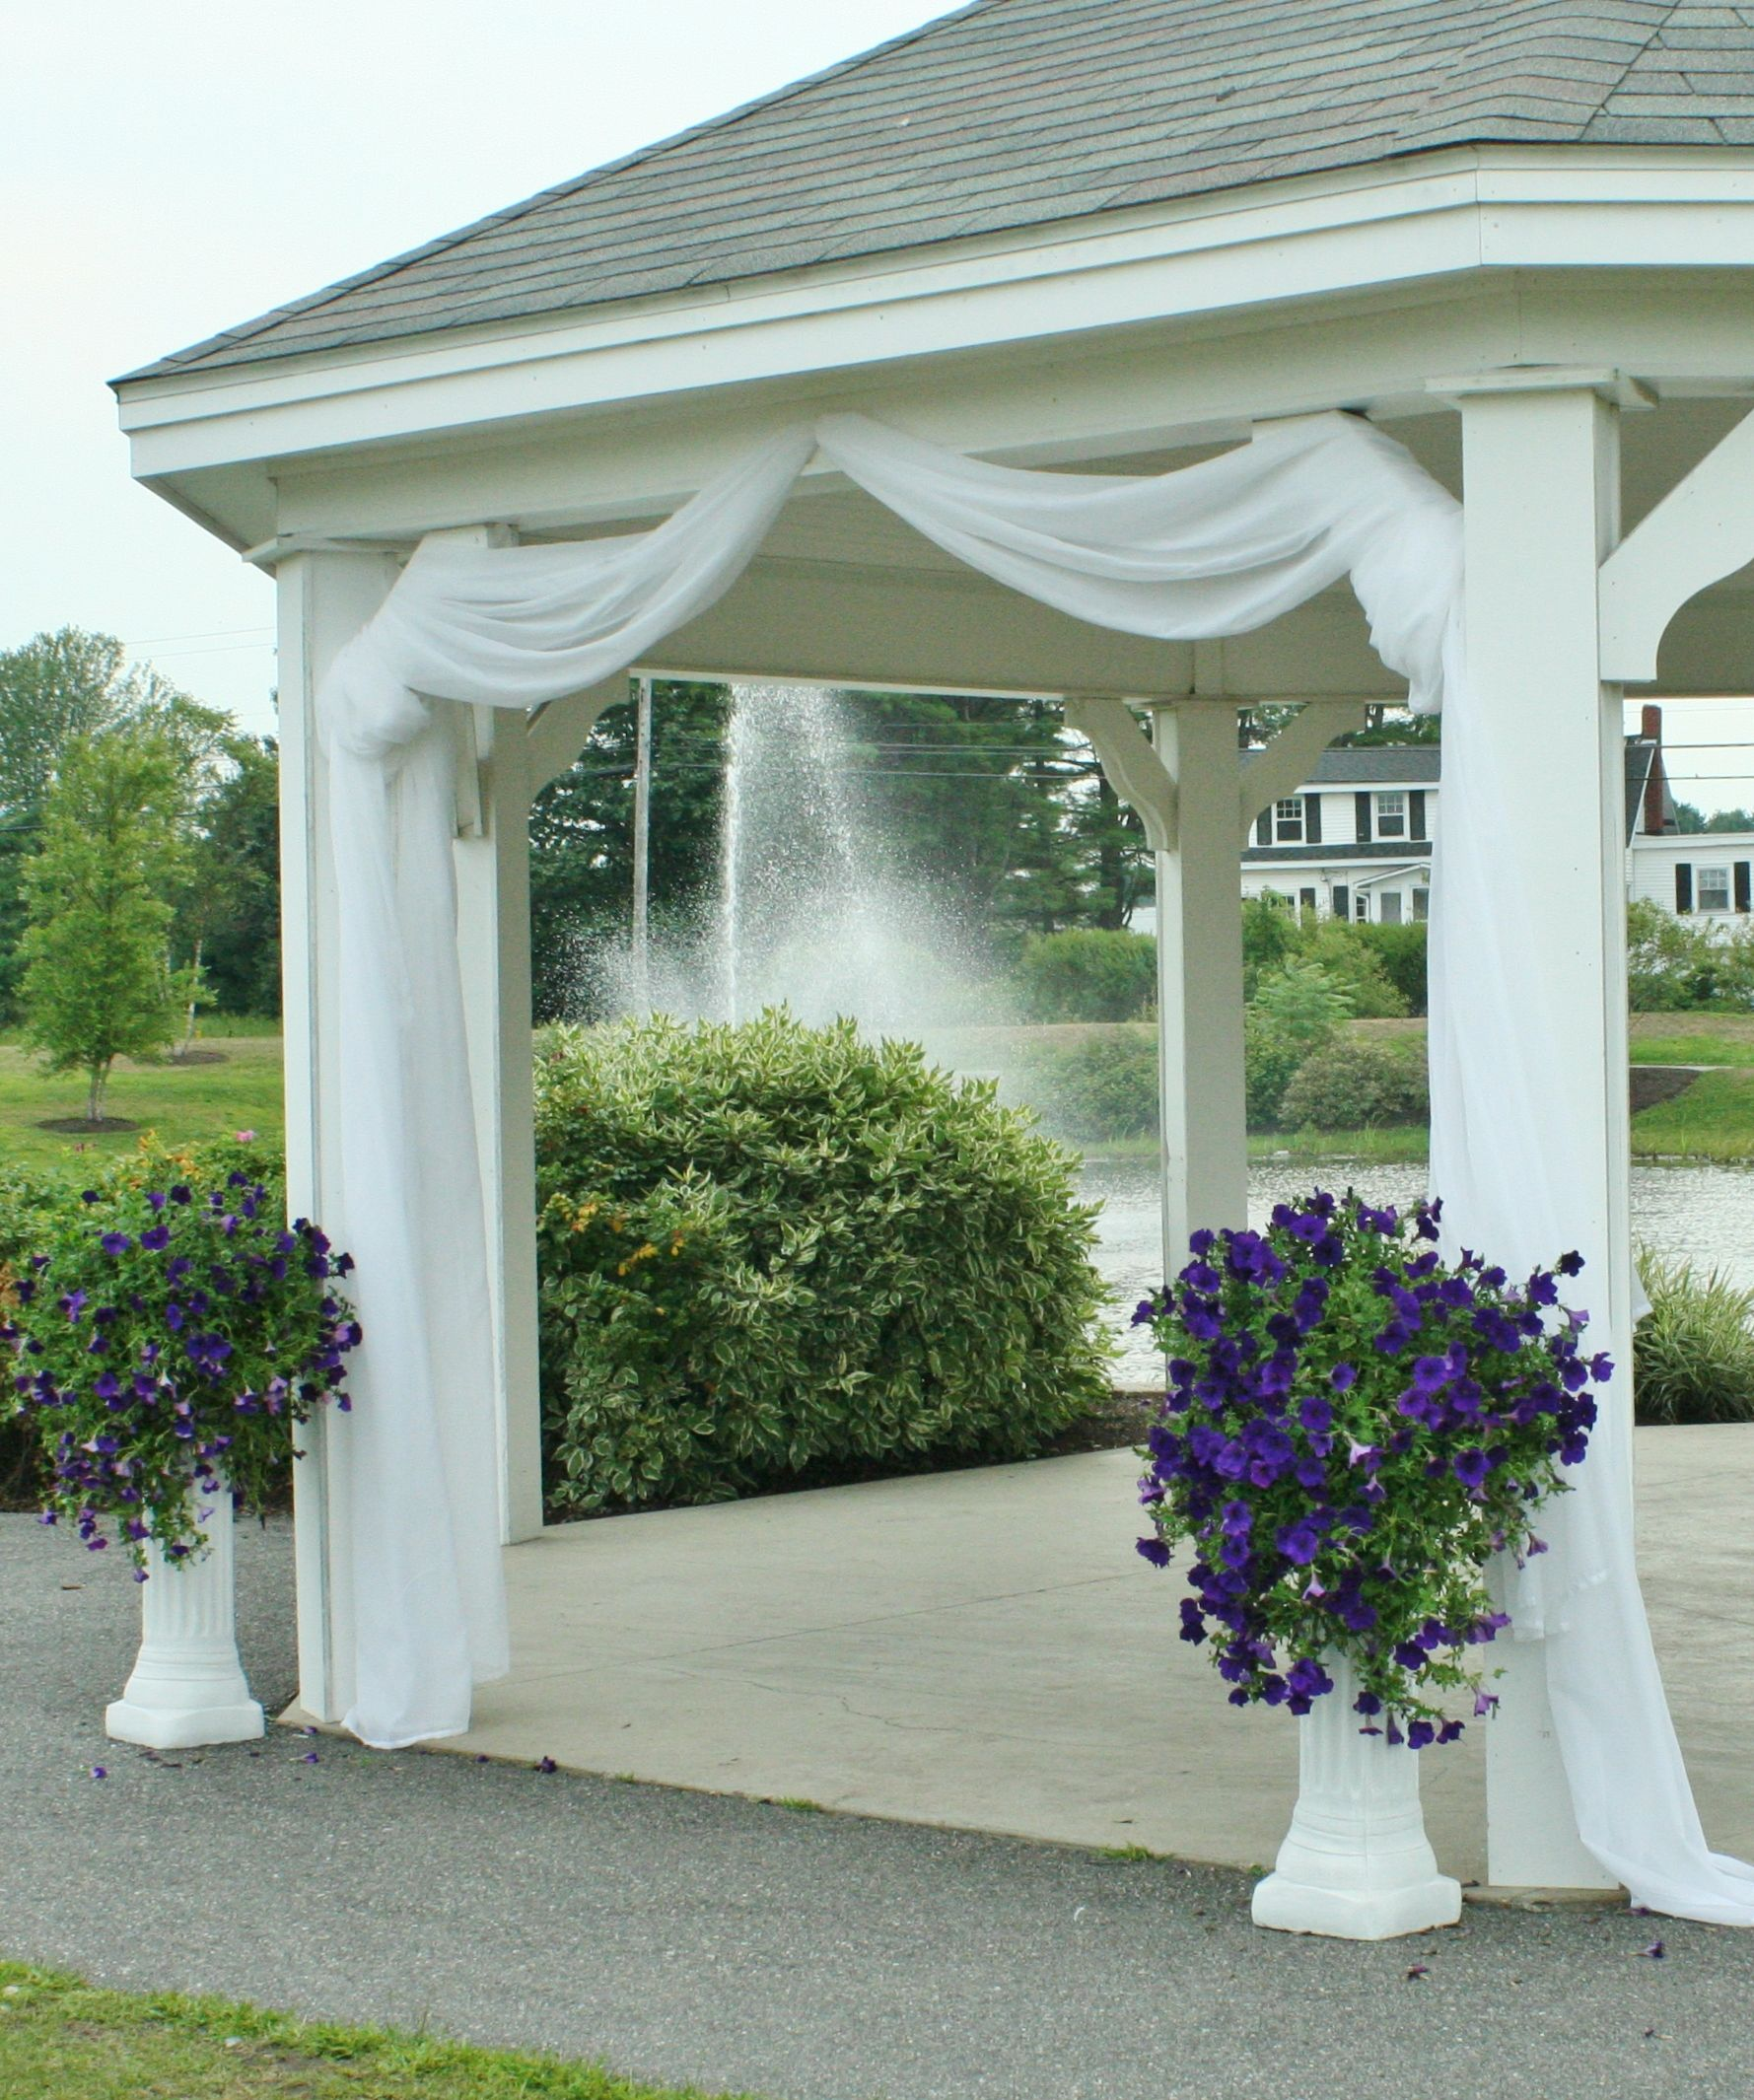 Use fabrictulle to decorate gazebo  maybe just at the entrance and not all the way around